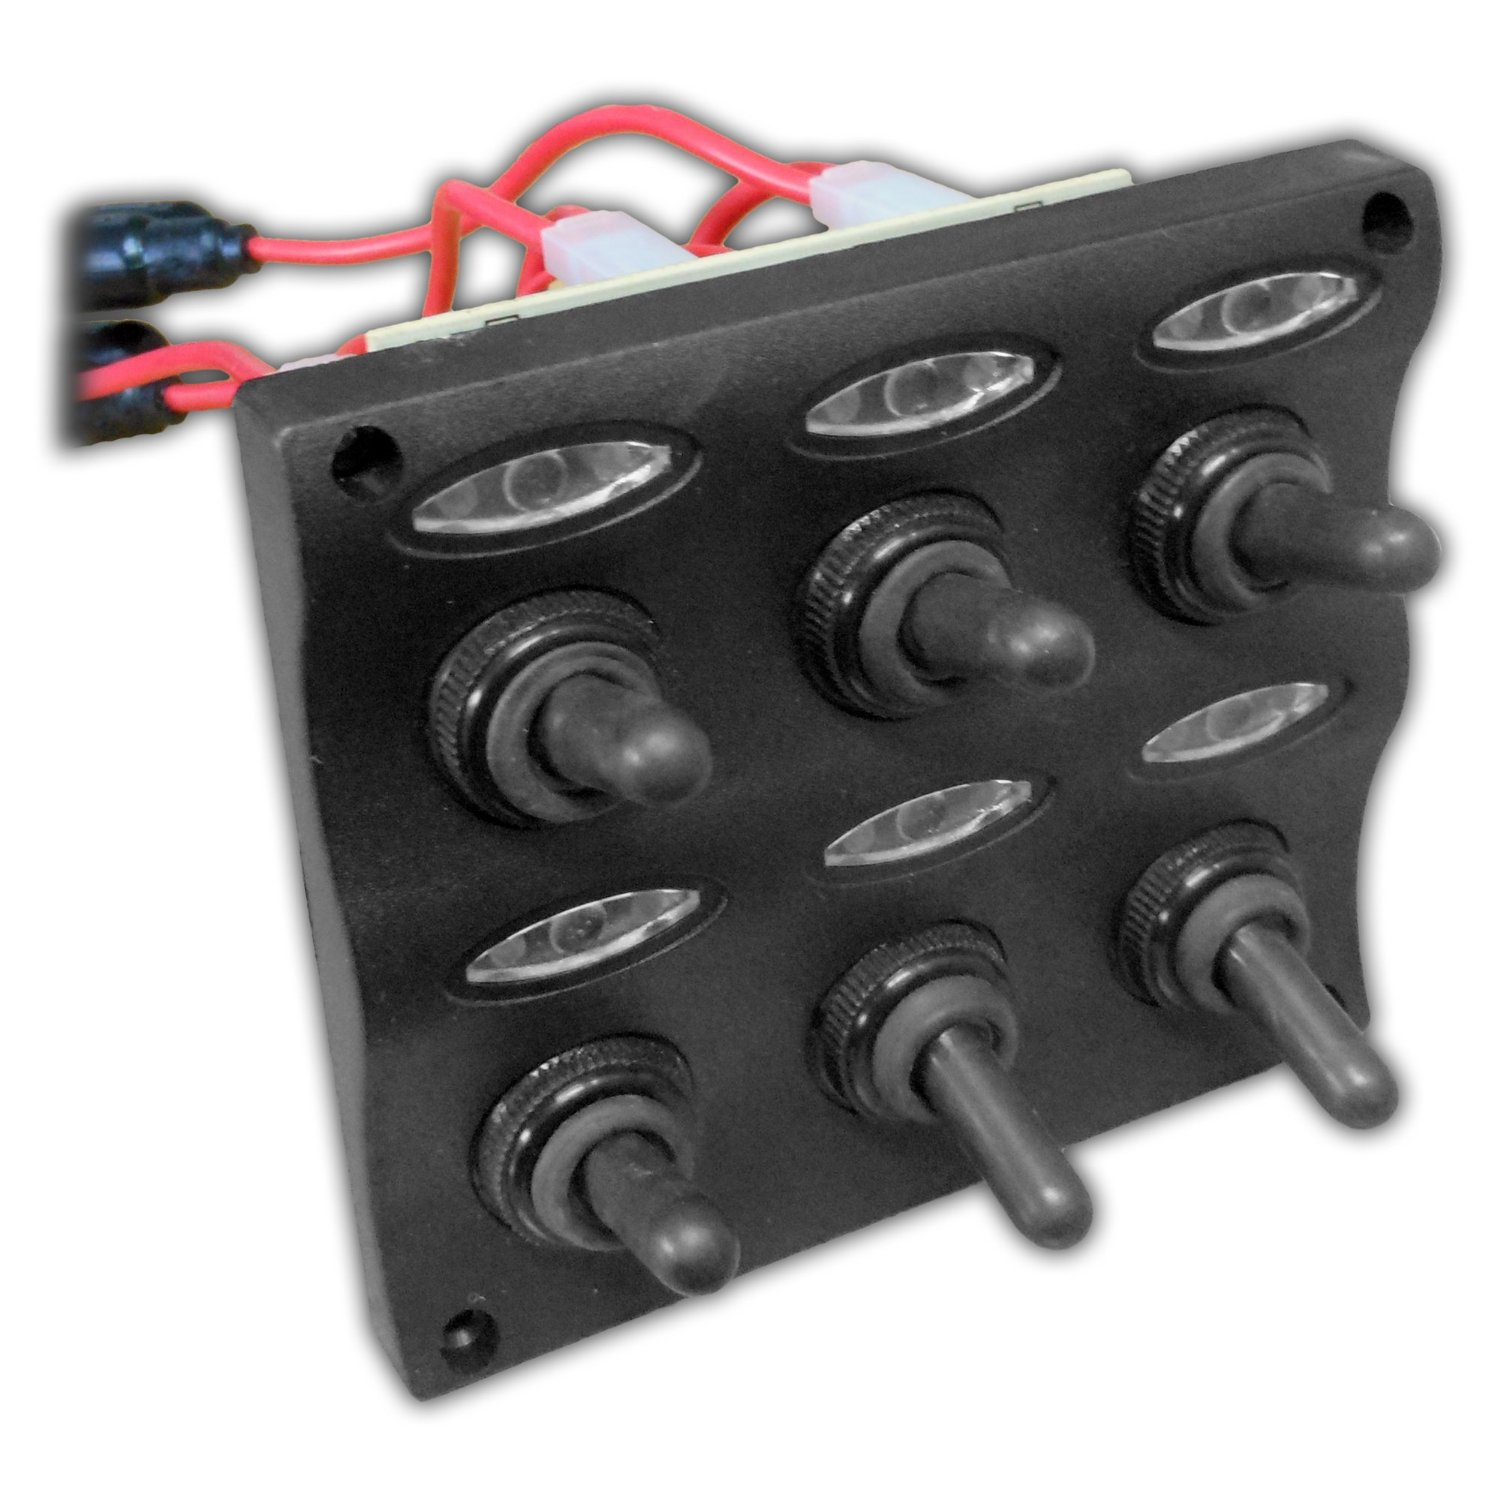 Marine Electric 6 Gang Led Toggle Switch Panel for Boat and Rvs Five Oceans best marine toggle and rocker switch panel 2017 reviews Marine Fuse Terminal Block at panicattacktreatment.co